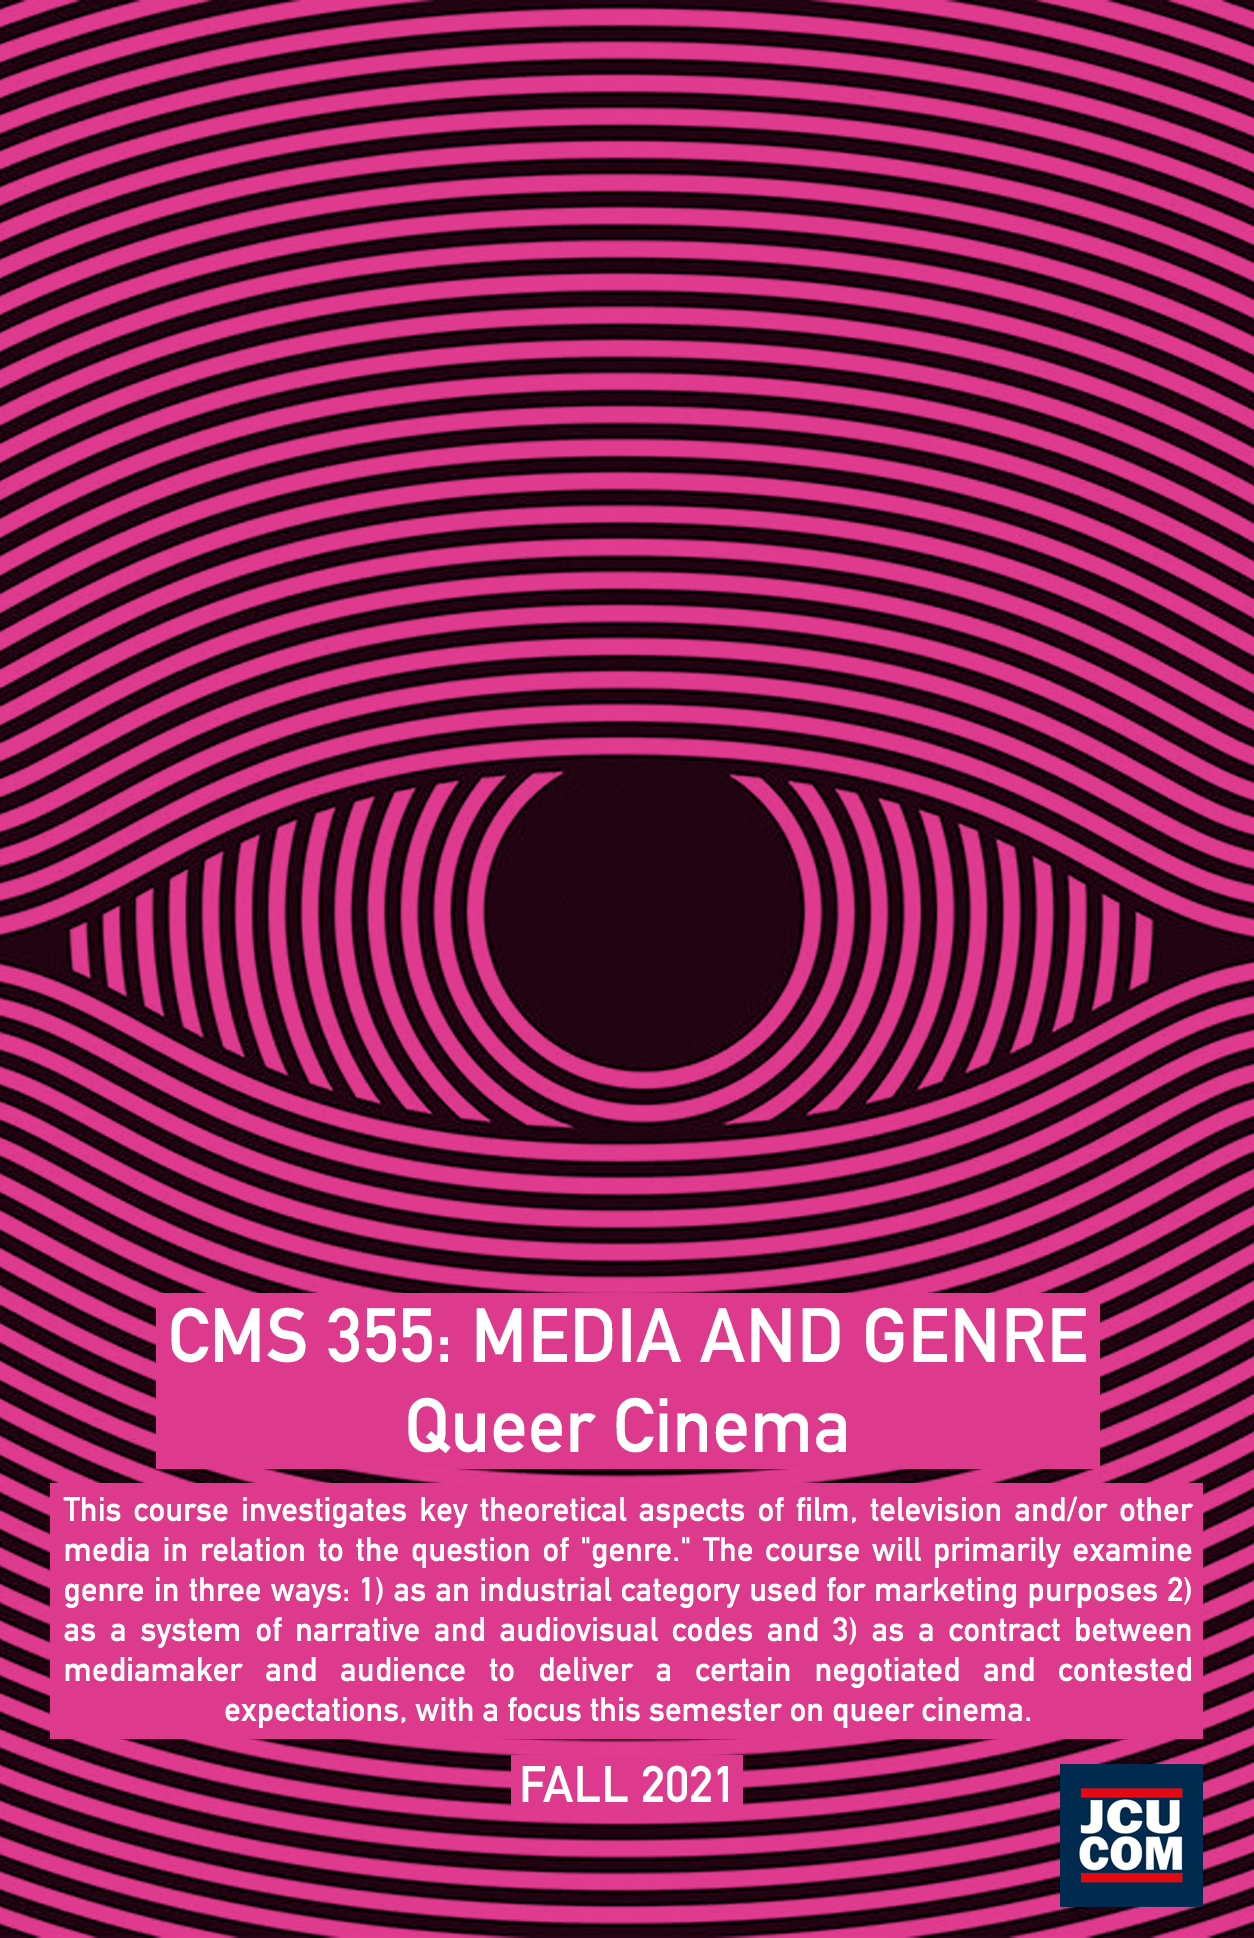 CMS 355 - Media and Genre - Queer Cinema